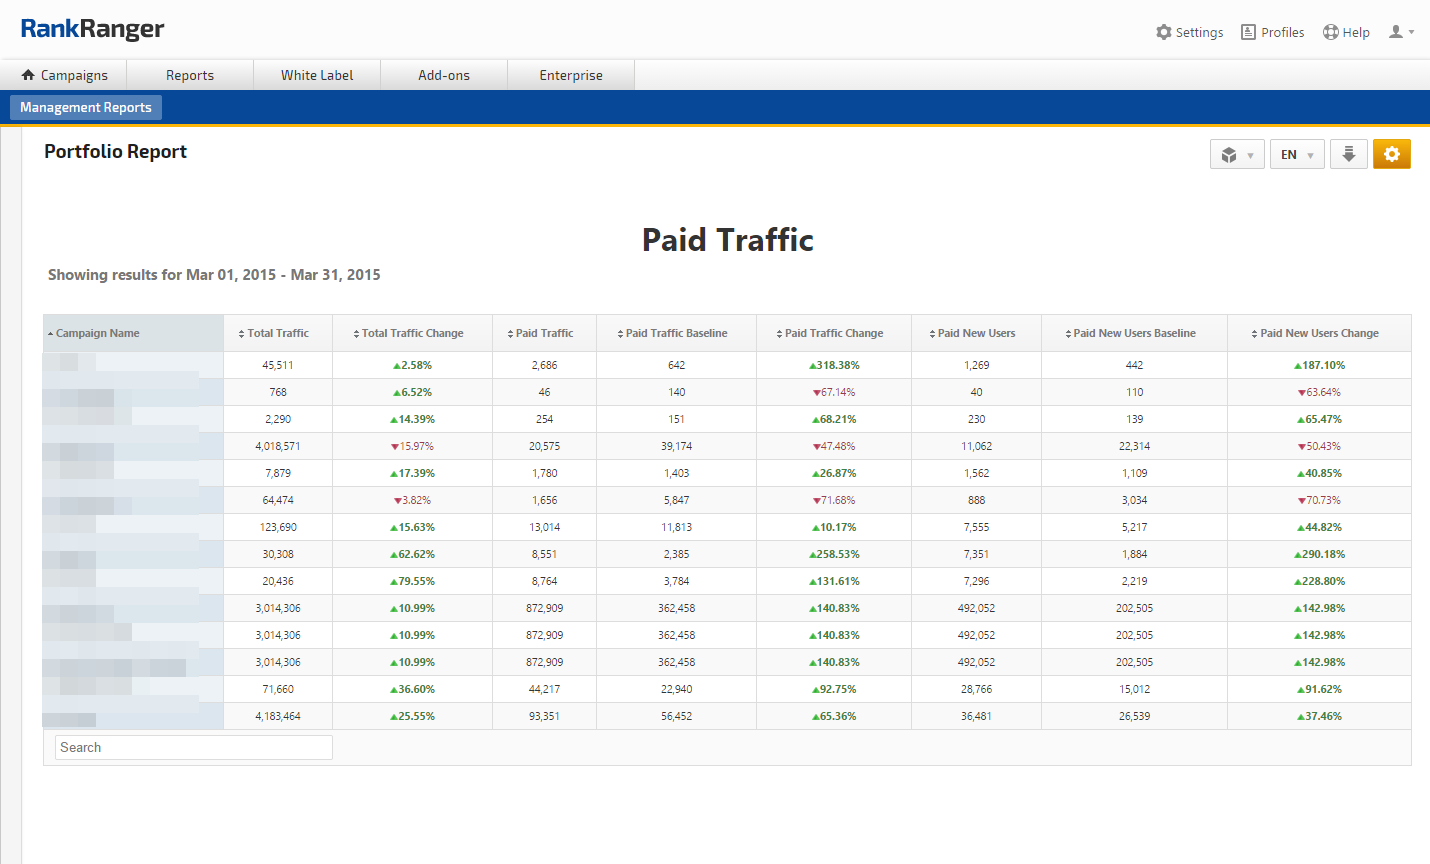 Analytics Paid Traffic Report for all campaign in the Portfolio